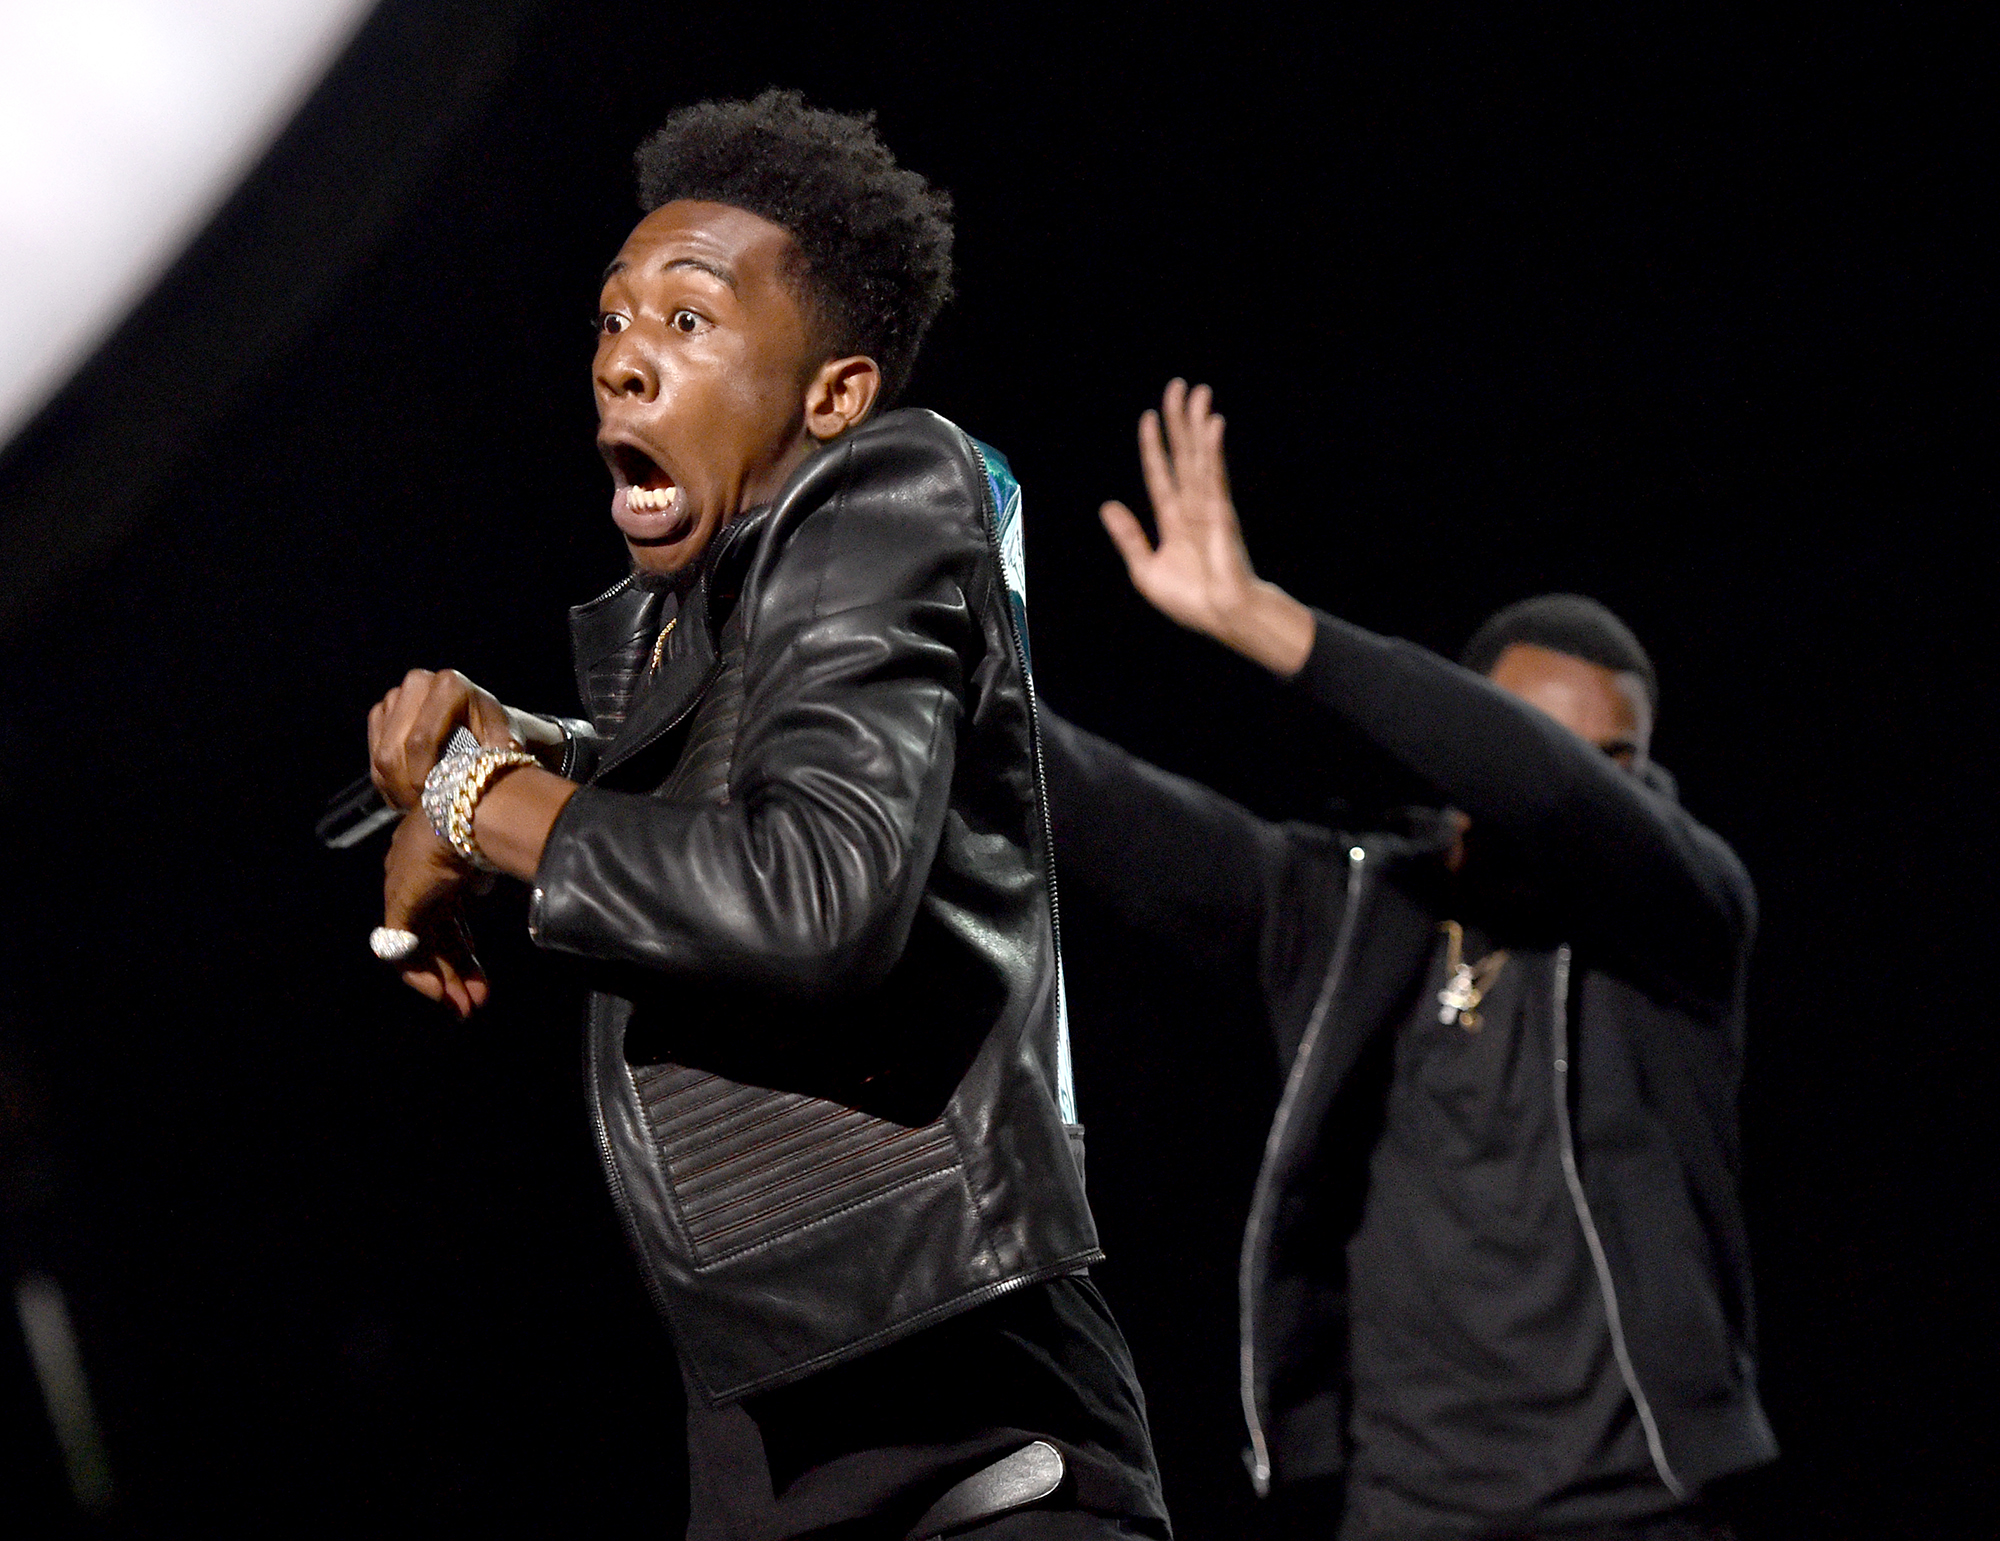 Desiigner performs onstage during the 2016 BET Awards at the Microsoft Theater on June 26, 2016 in Los Angeles, California.  (Photo by Paras Griffin/BET/Getty Images for BET)